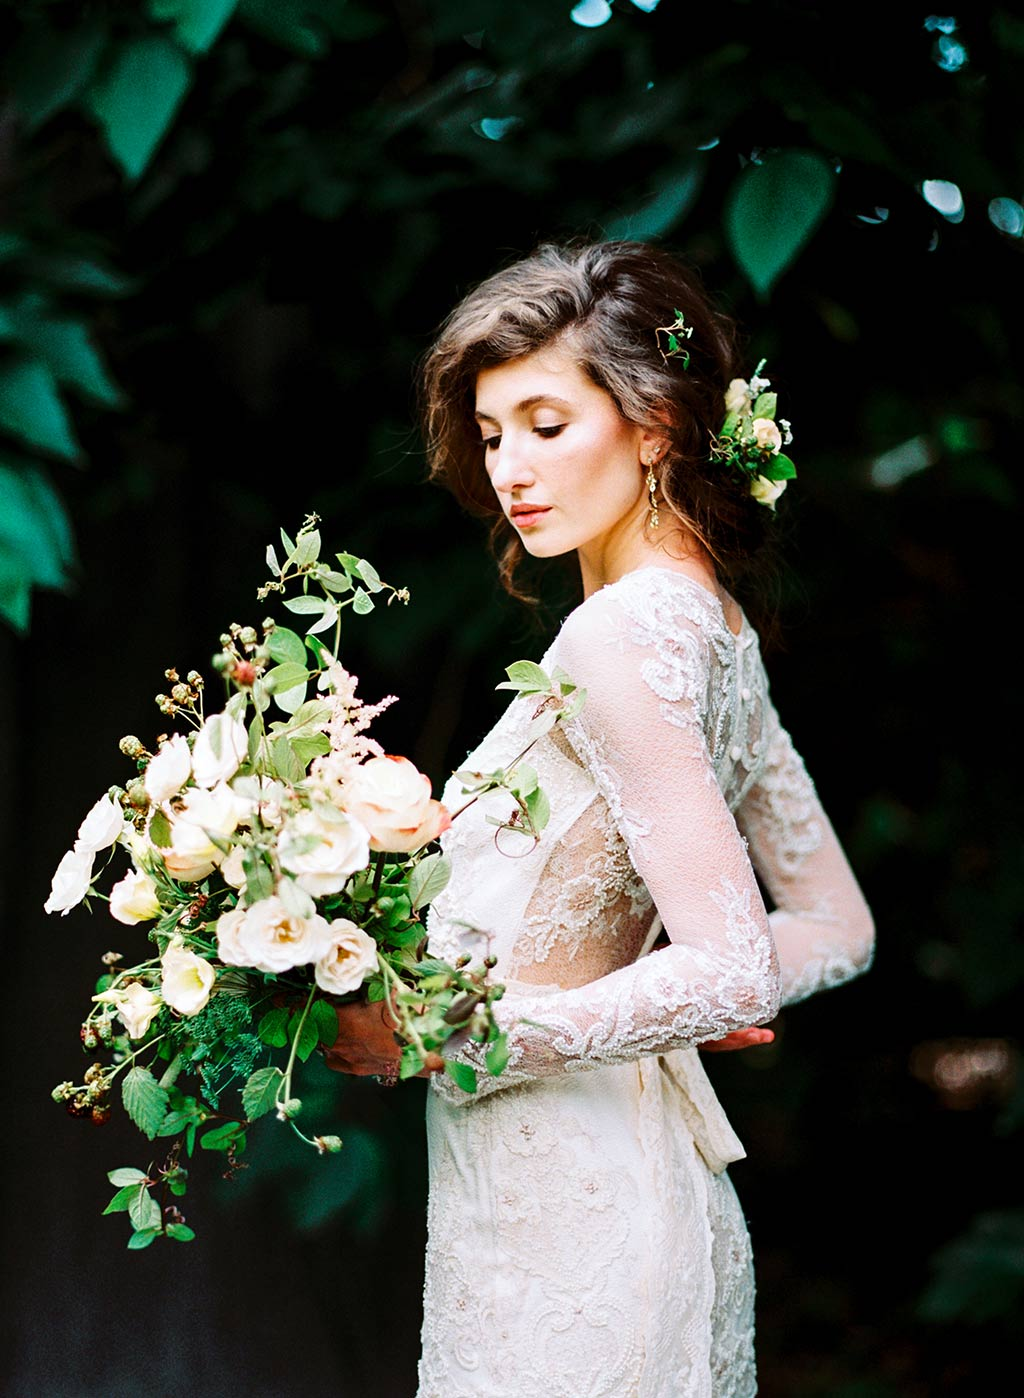 Bride with Wedding Flowers